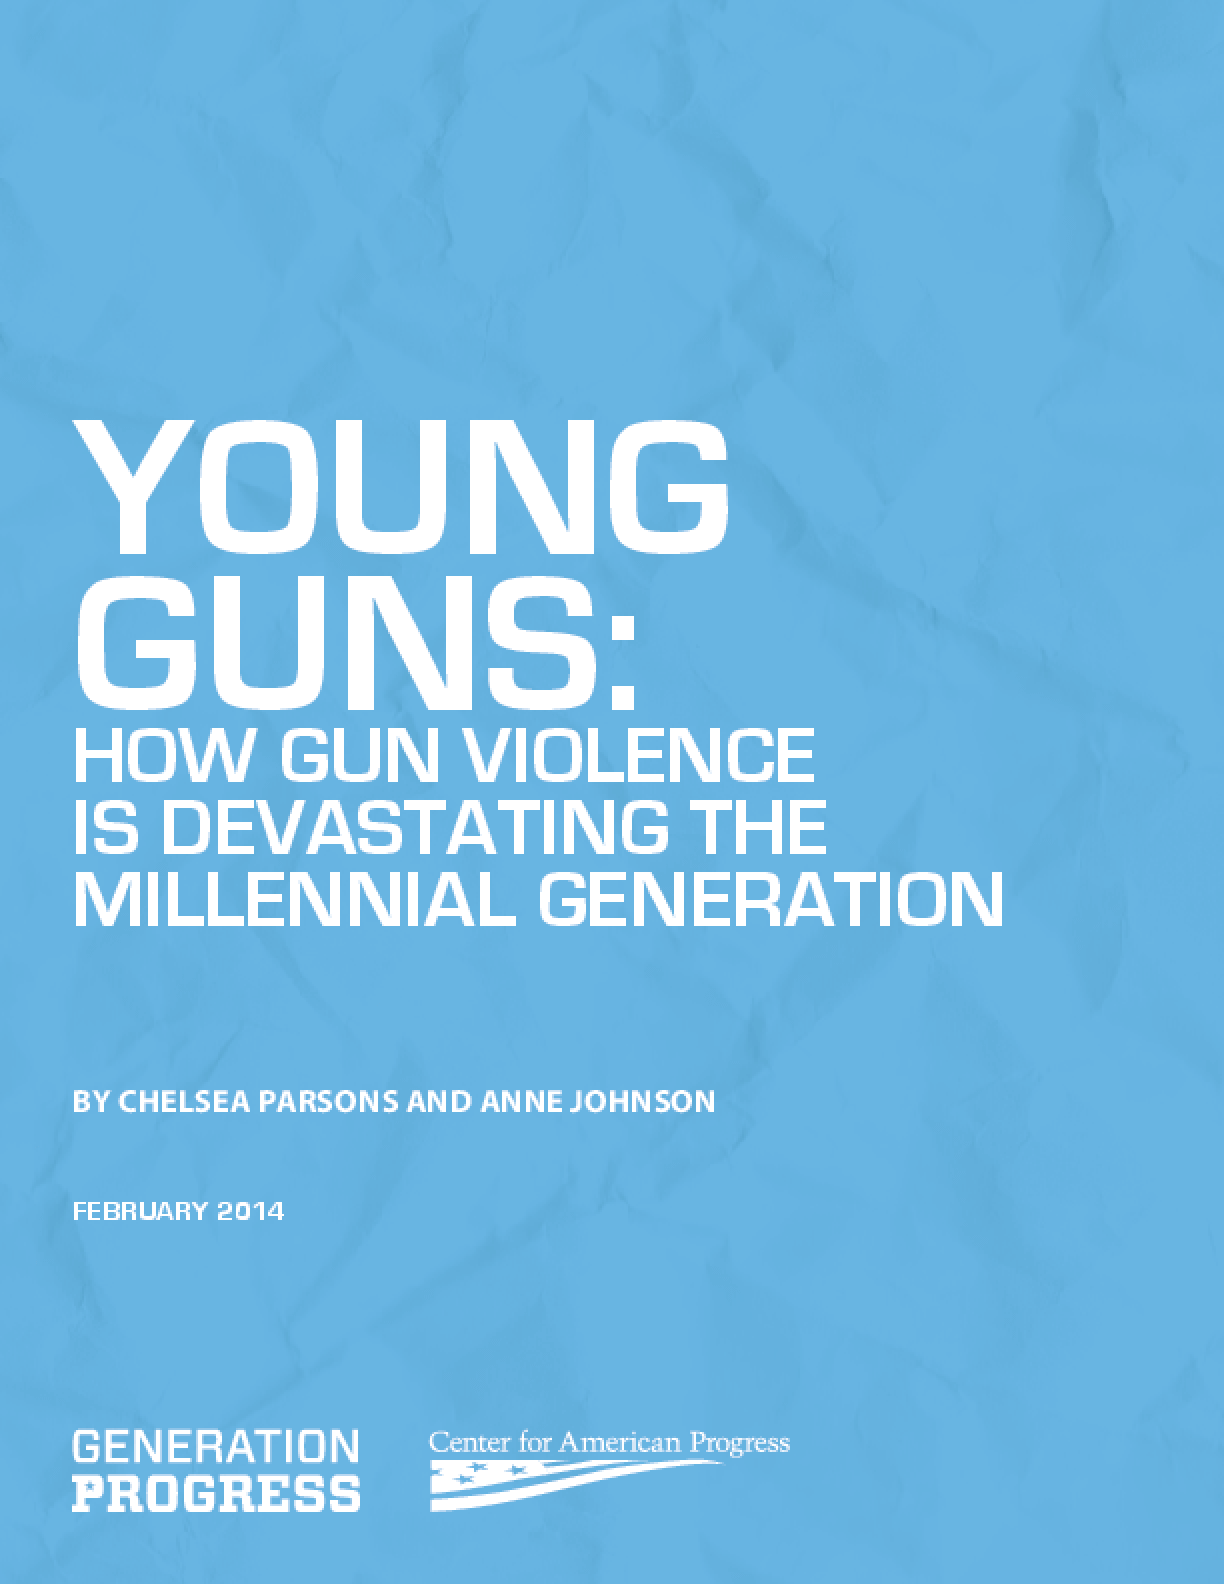 Young Guns: How Gun Violence Is Devastating the Millennial Generation